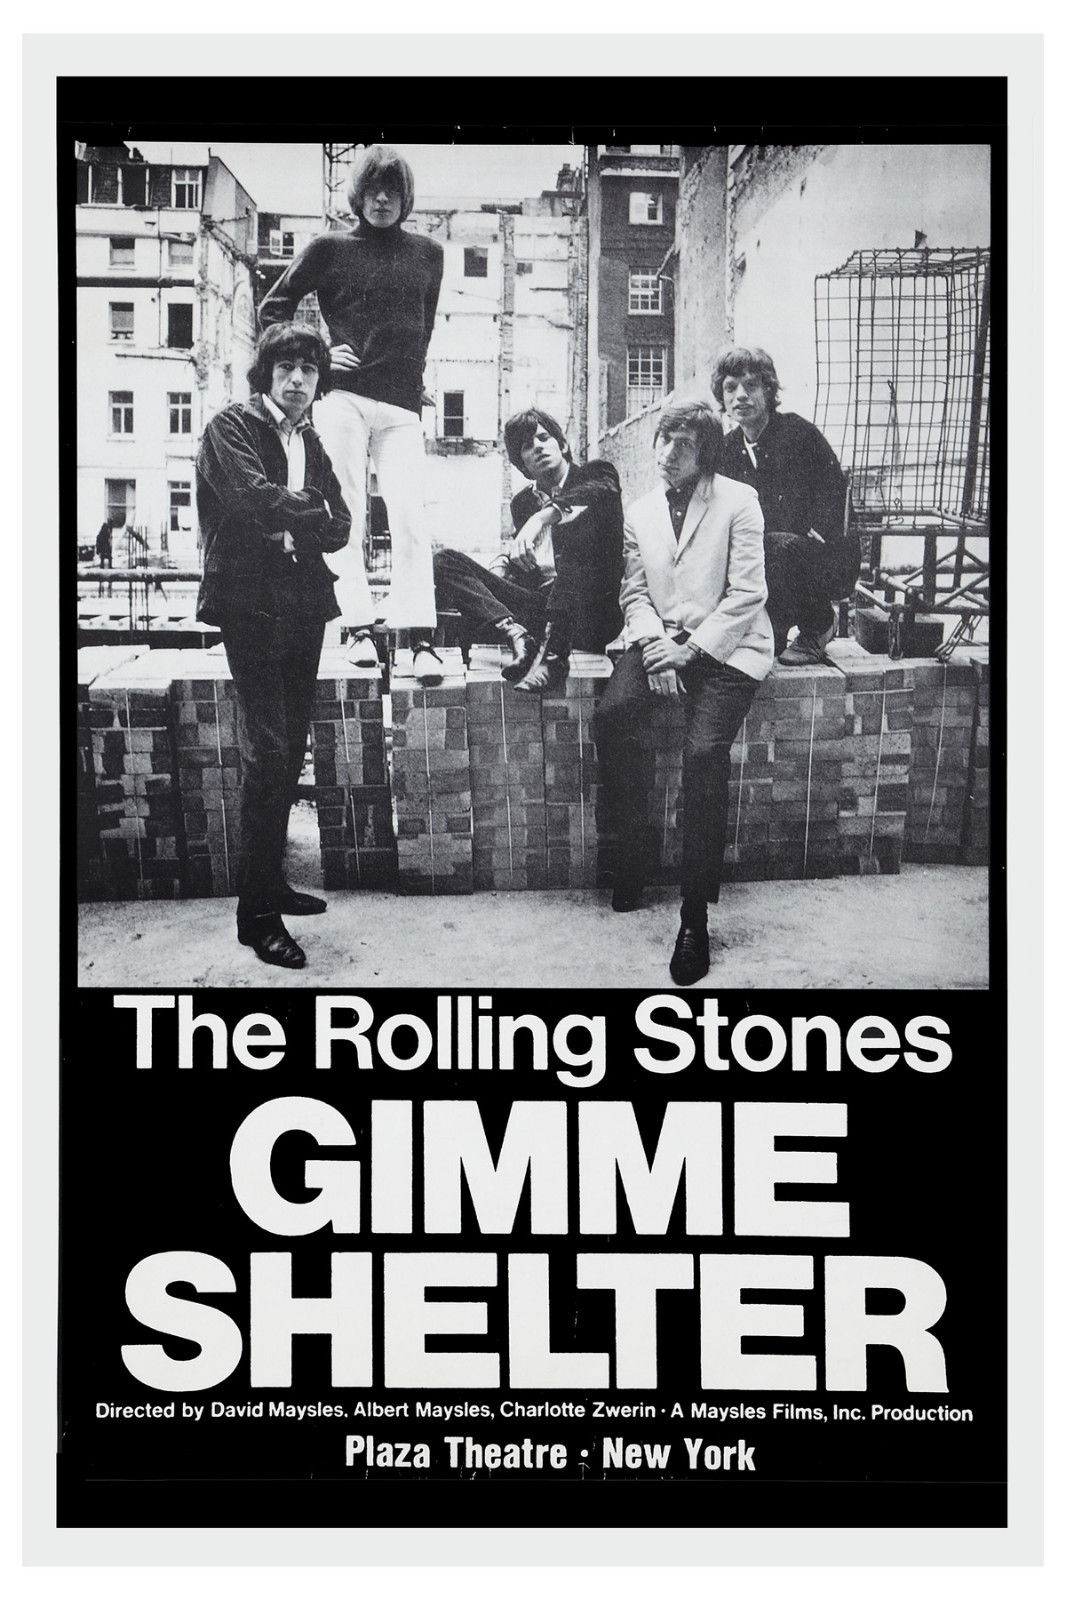 Fifty Years of Rolling Stones Tour Posters - Flashbak